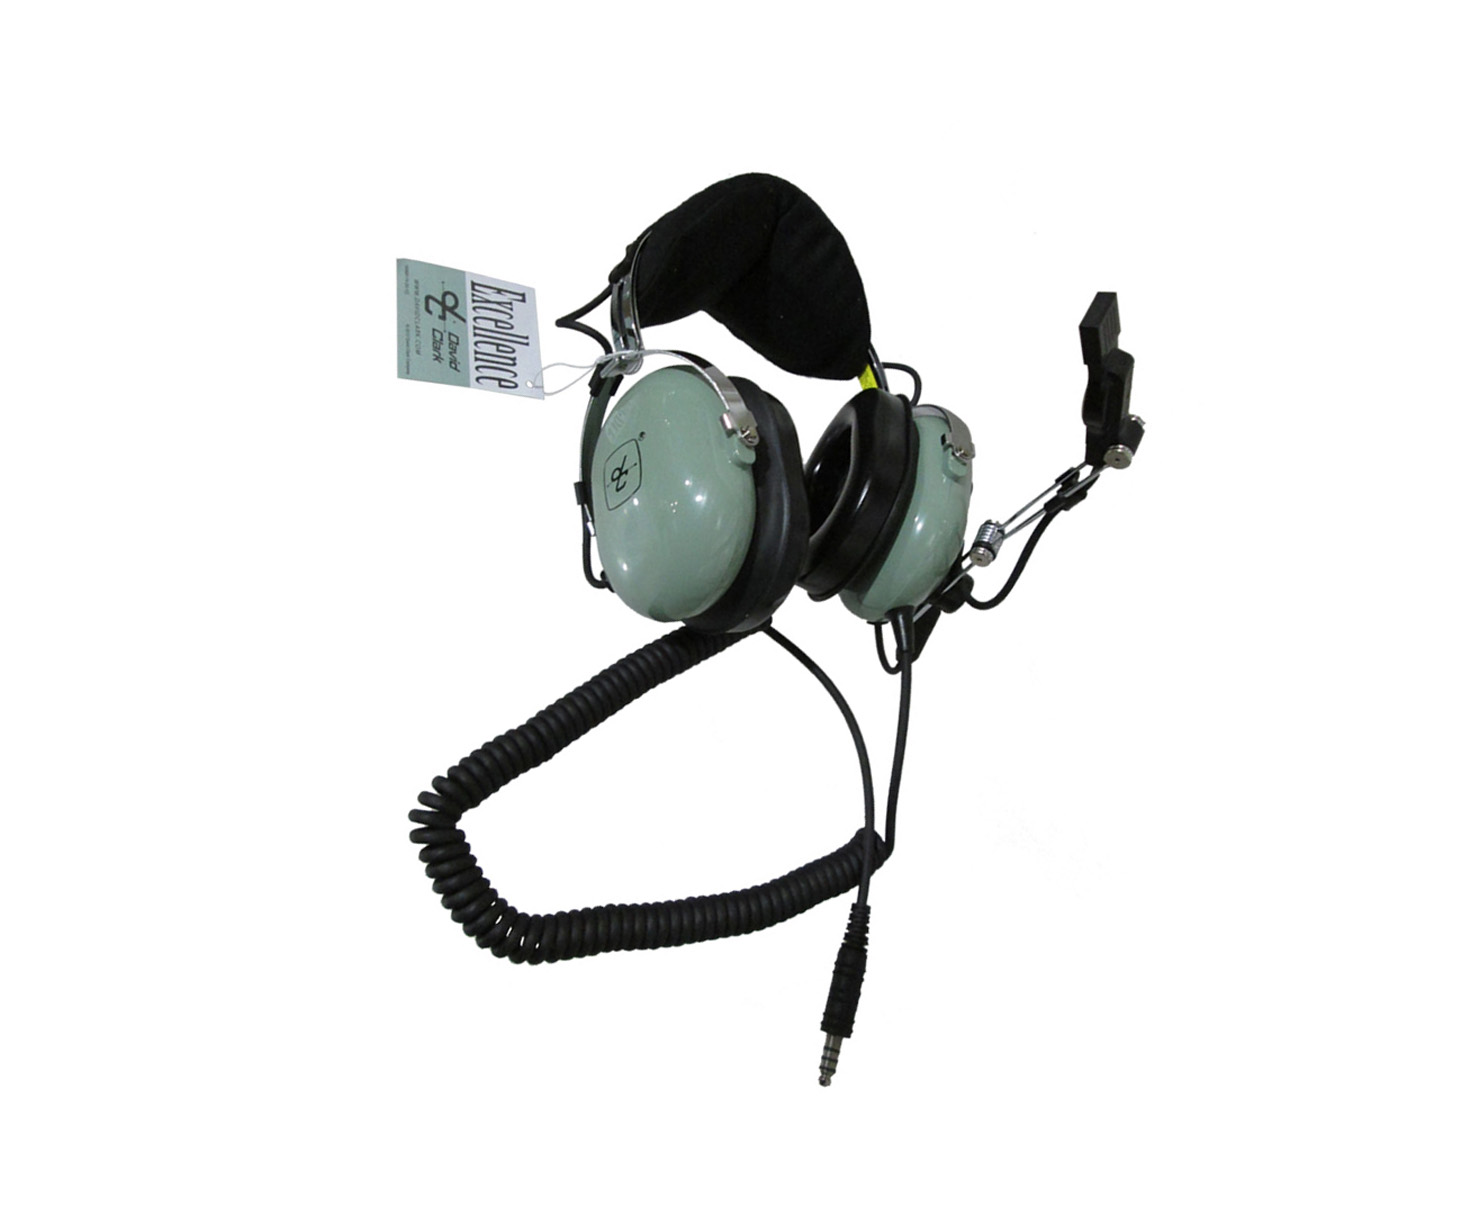 david clark h10 76 low impedance headset 12510g 21 10 david clark h10 76 military aircraft headset david clark h10-76 wiring diagram at panicattacktreatment.co